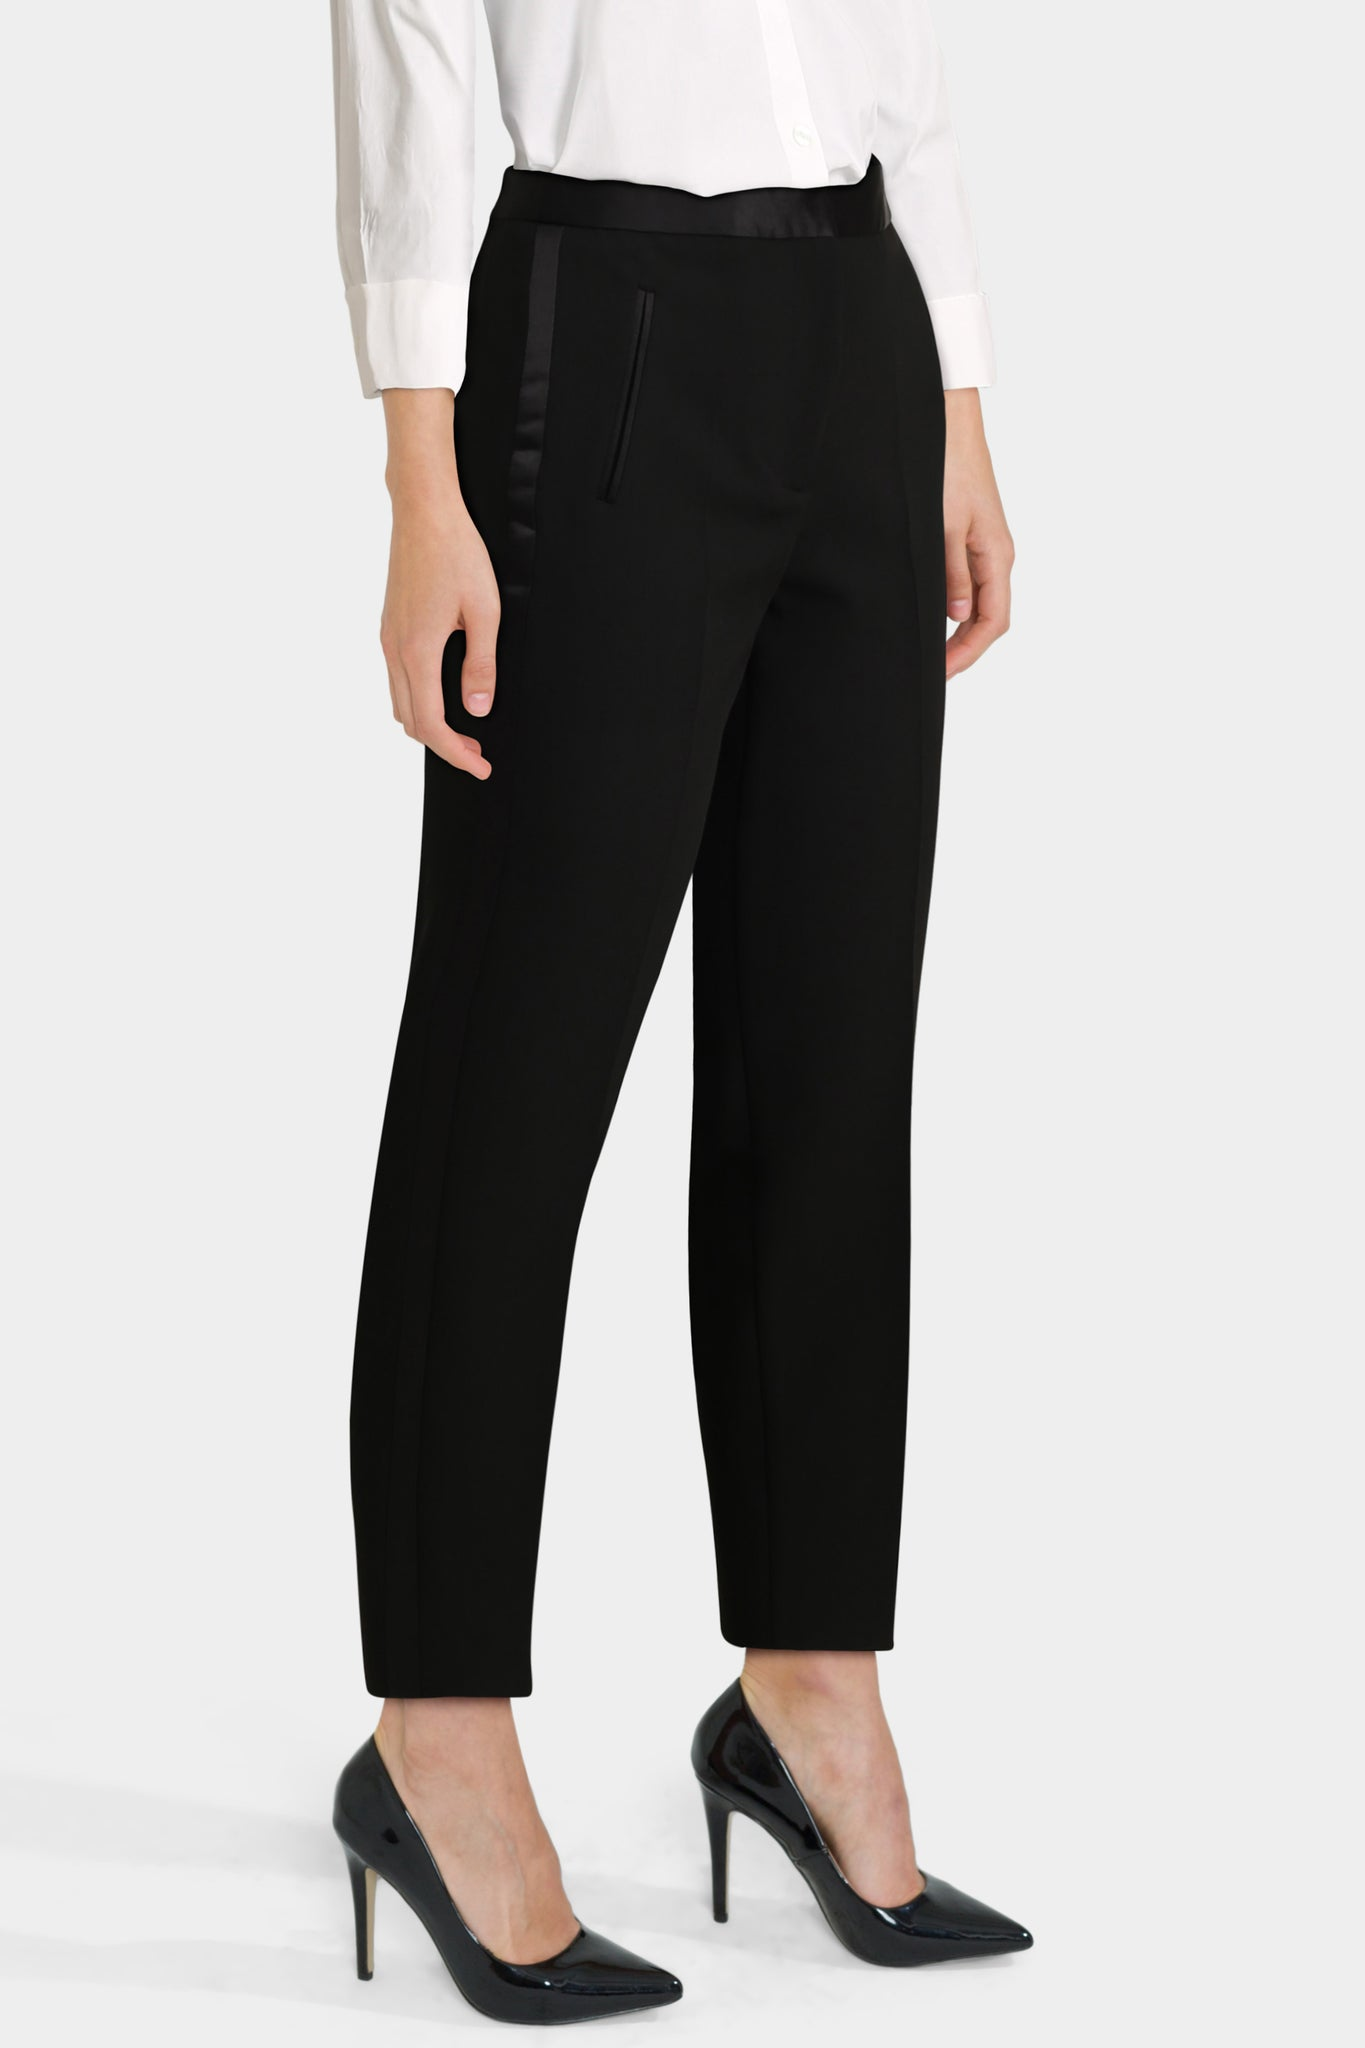 Tuxedo Trousers With Side Trim Detail